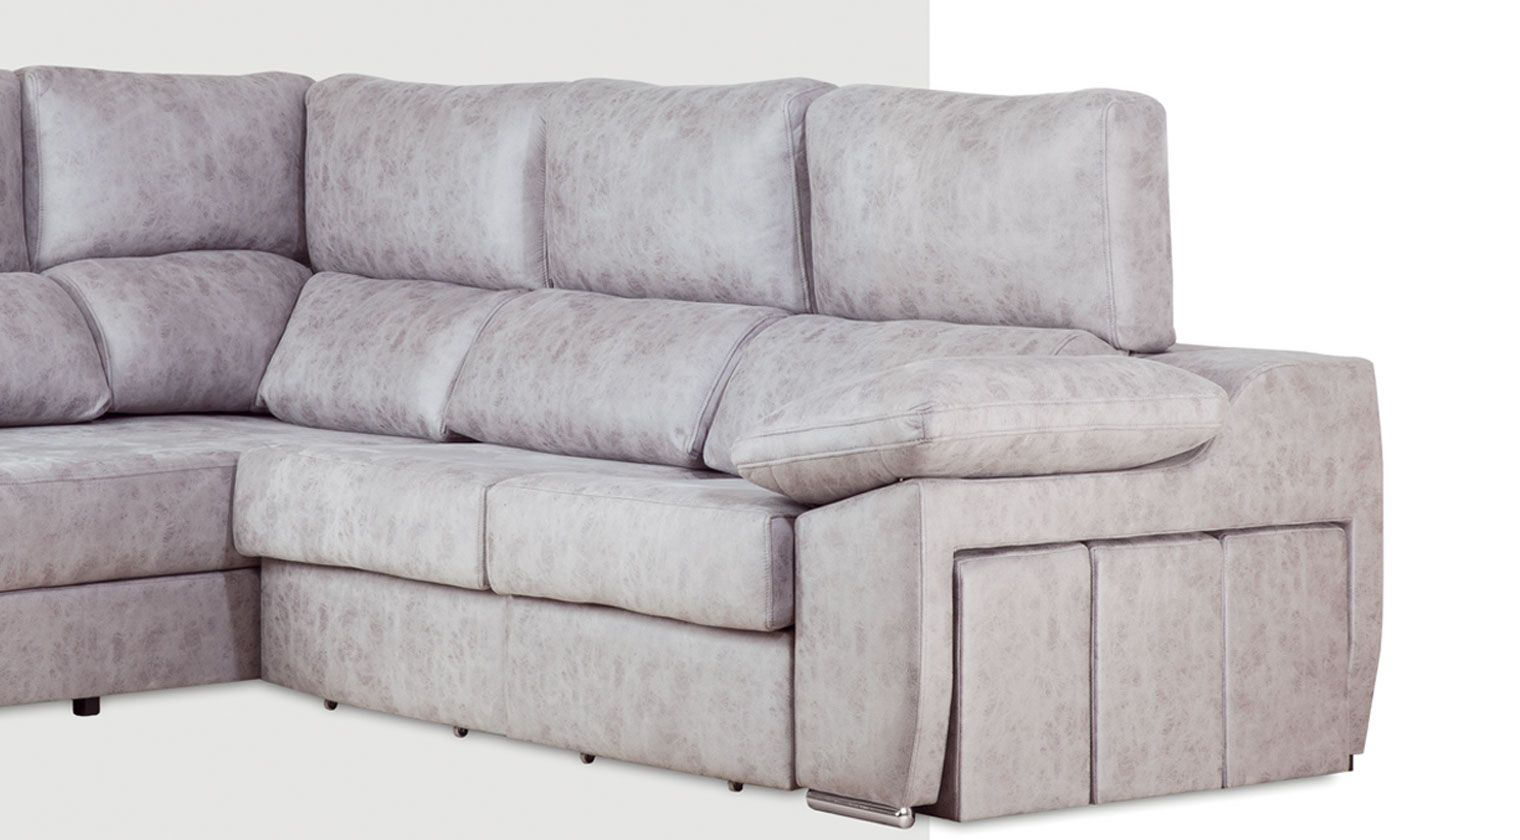 sofas modernos madrid latest sof plazas xl with sofas